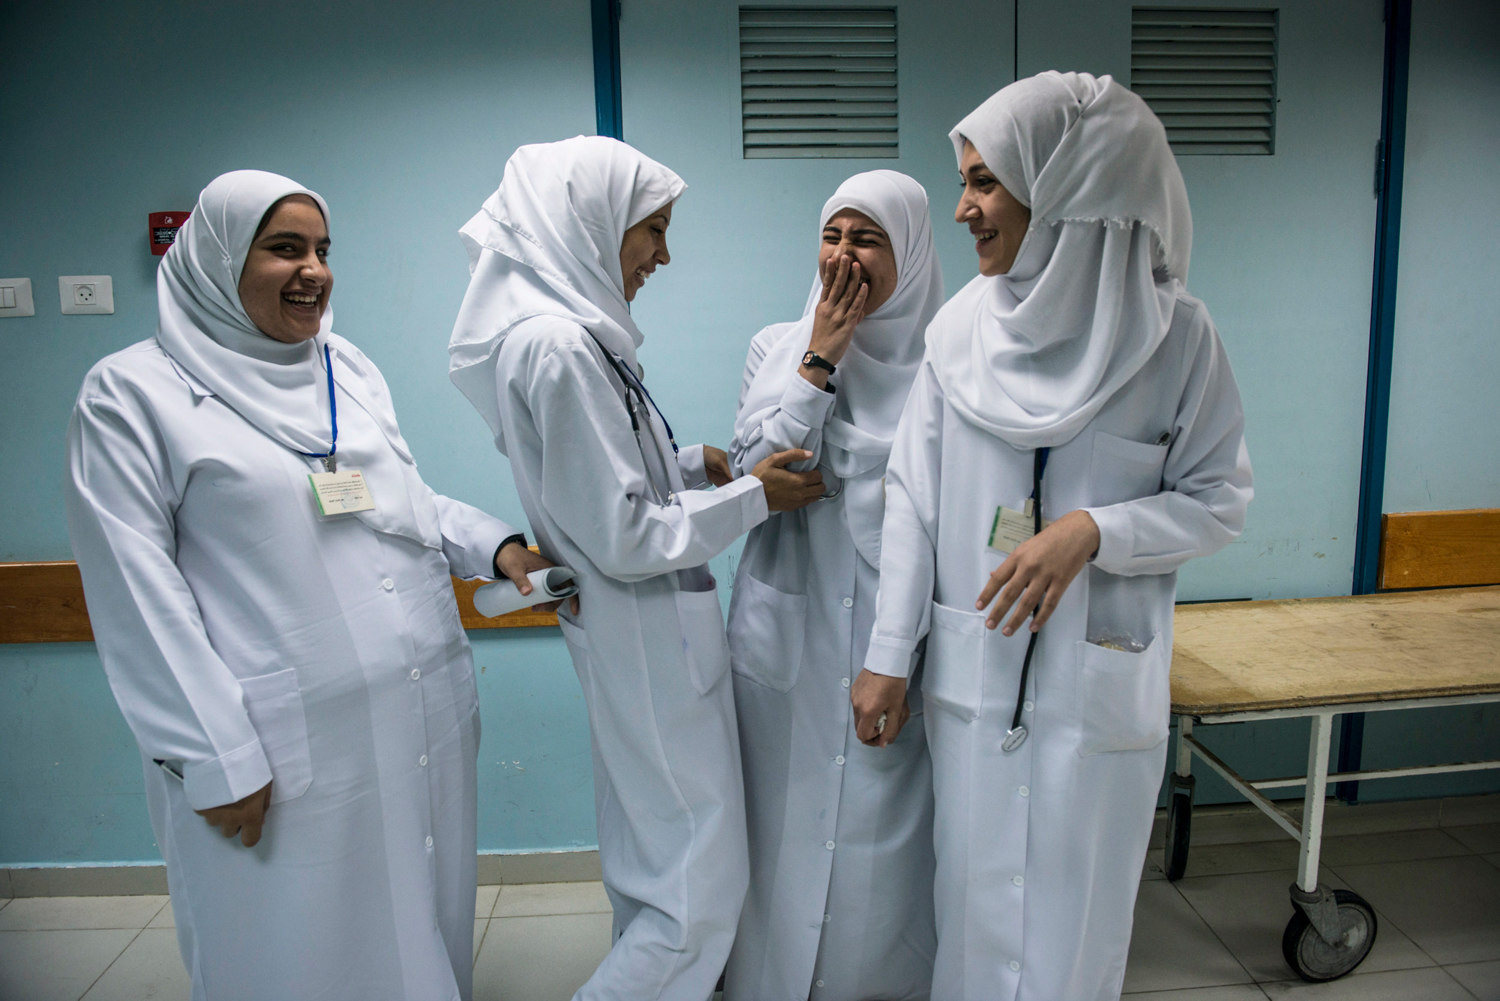 Medical students from Islamic University on break in the Maternity Ward of Al-Shifa Hospital in Gaza.